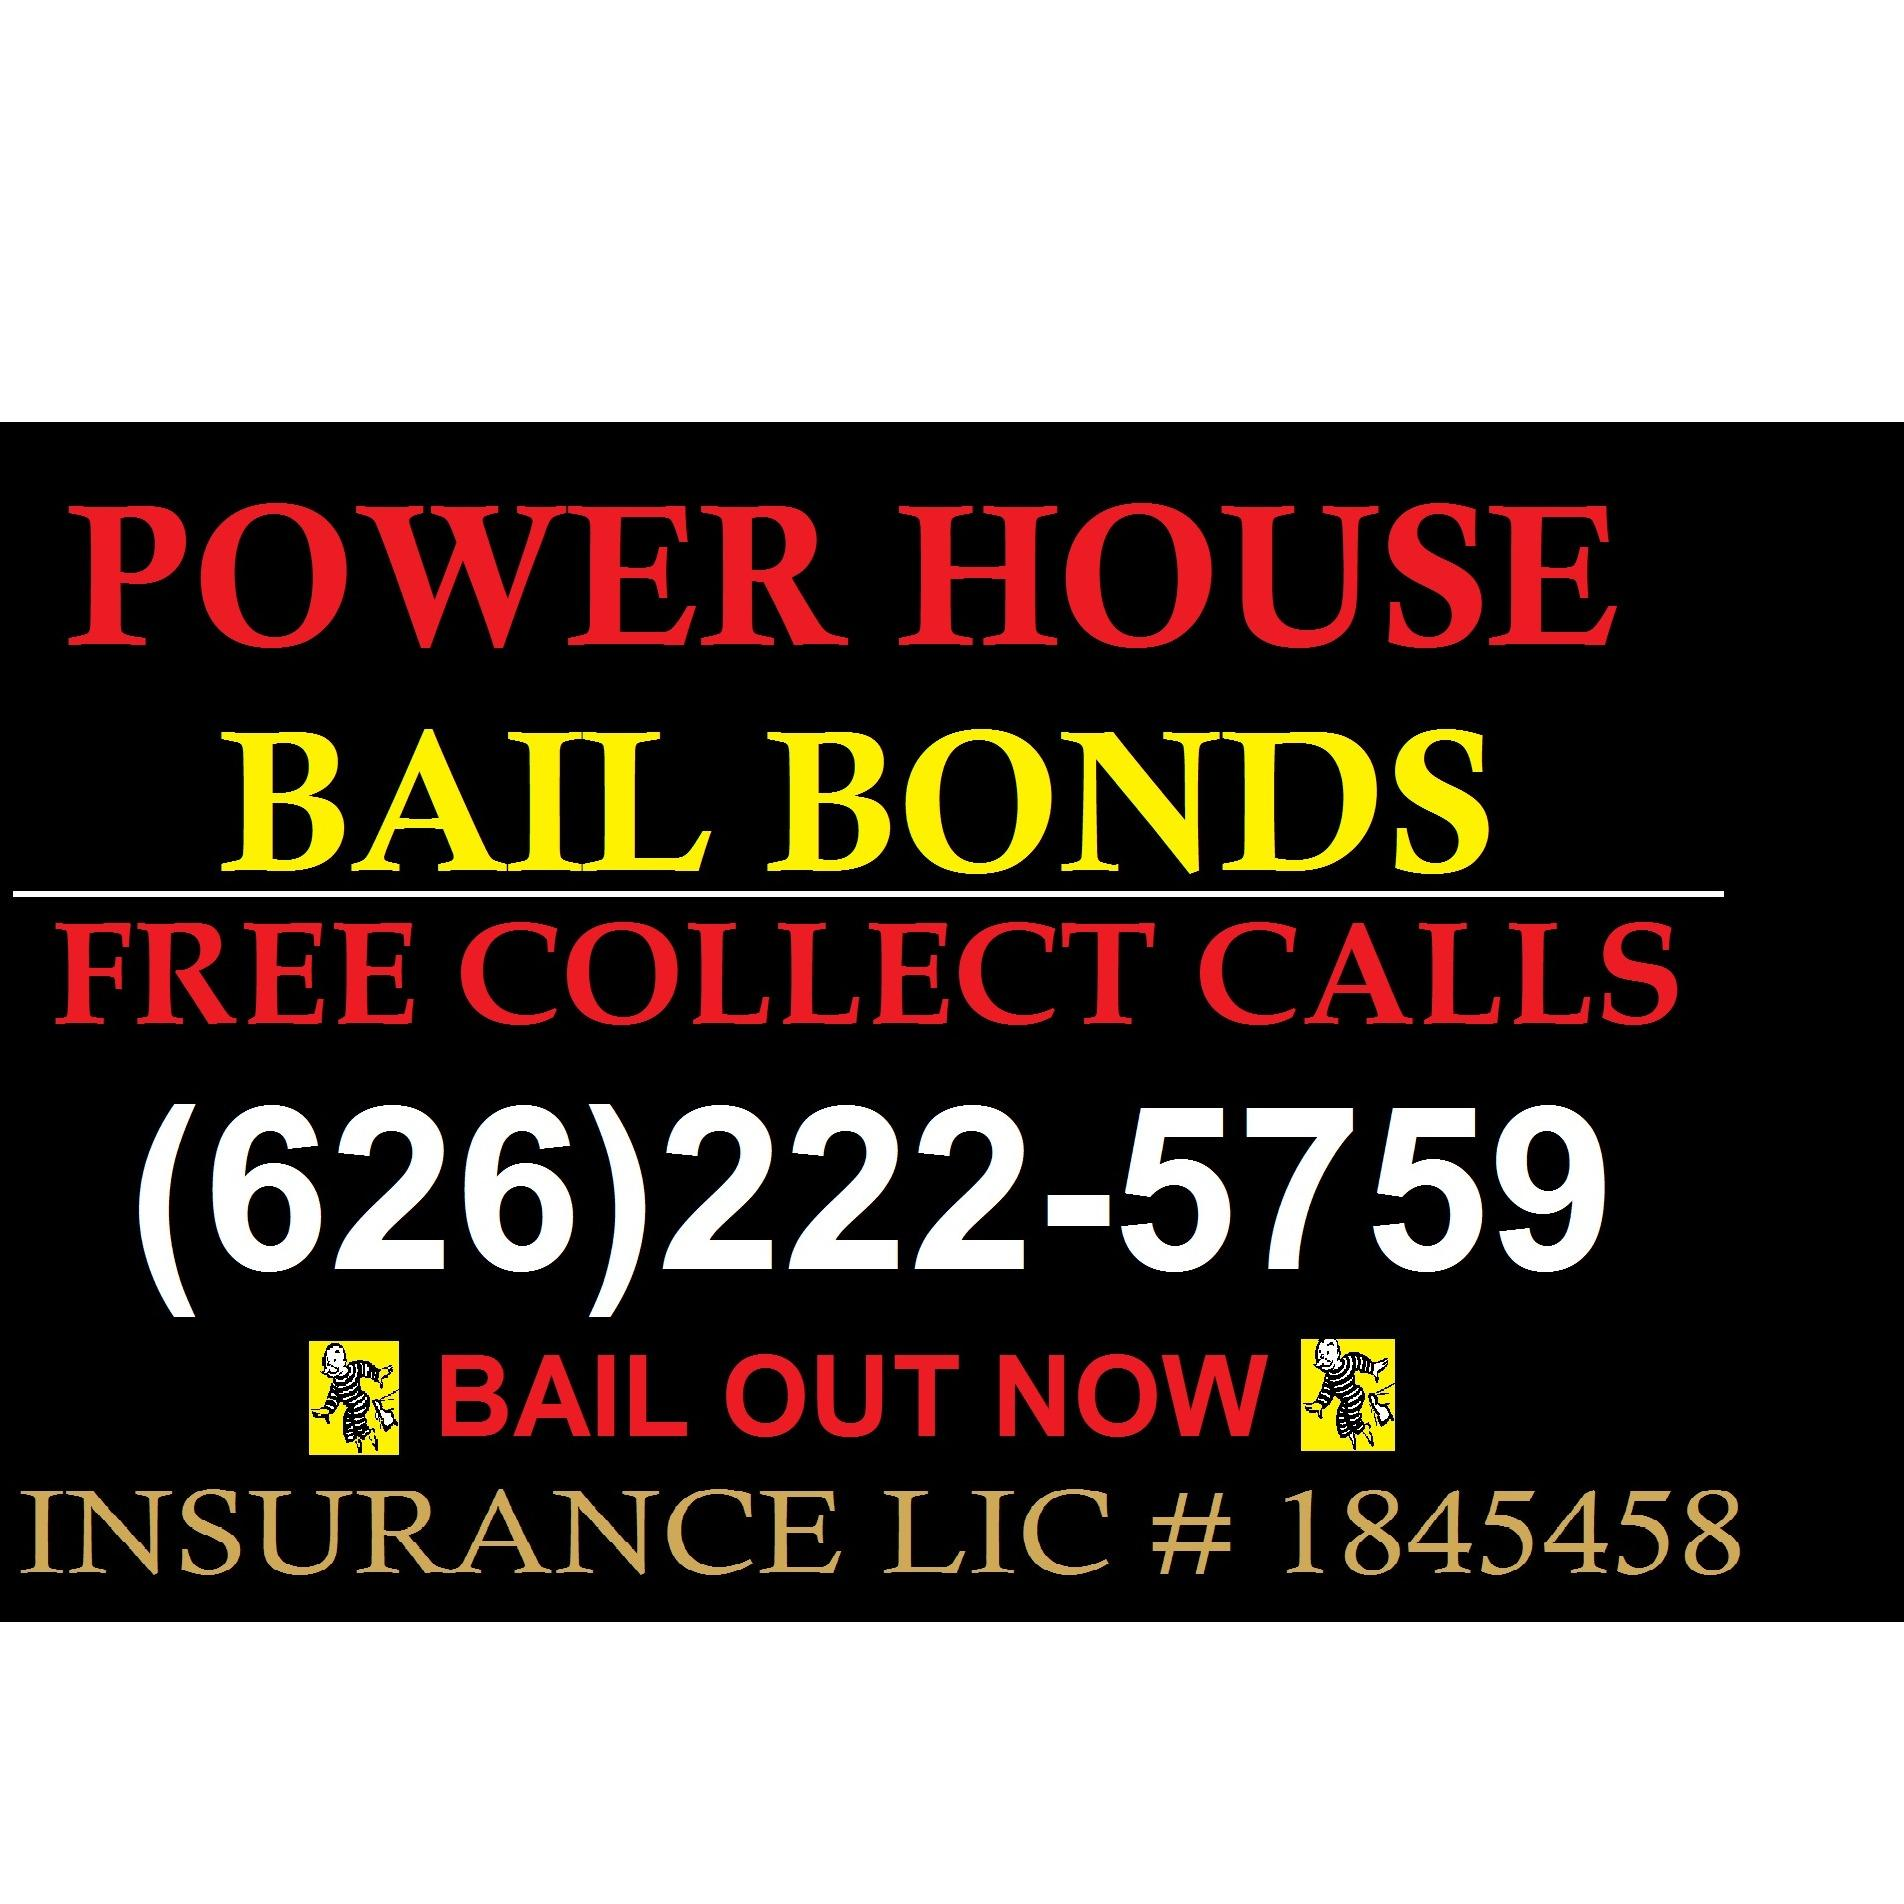 POWER HOUSE BAIL BONDS